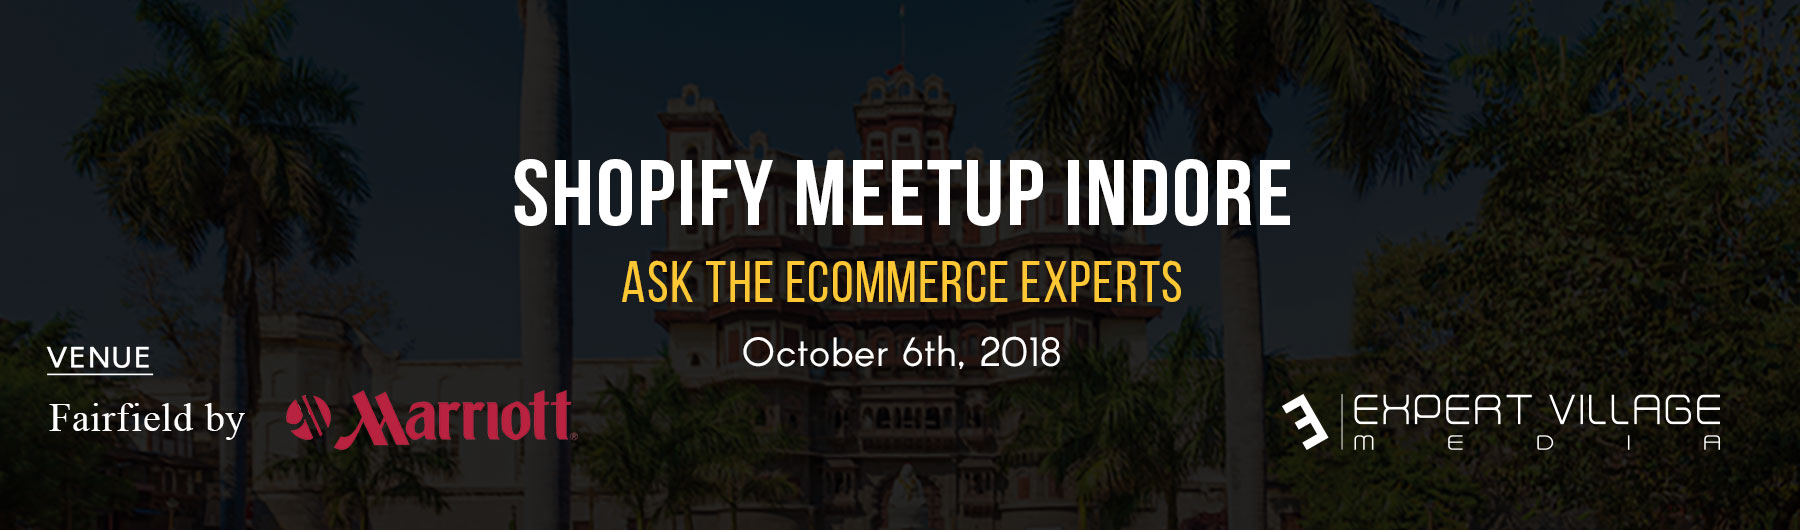 Shopify Meetup Indore - Hosted by Expert Village Media